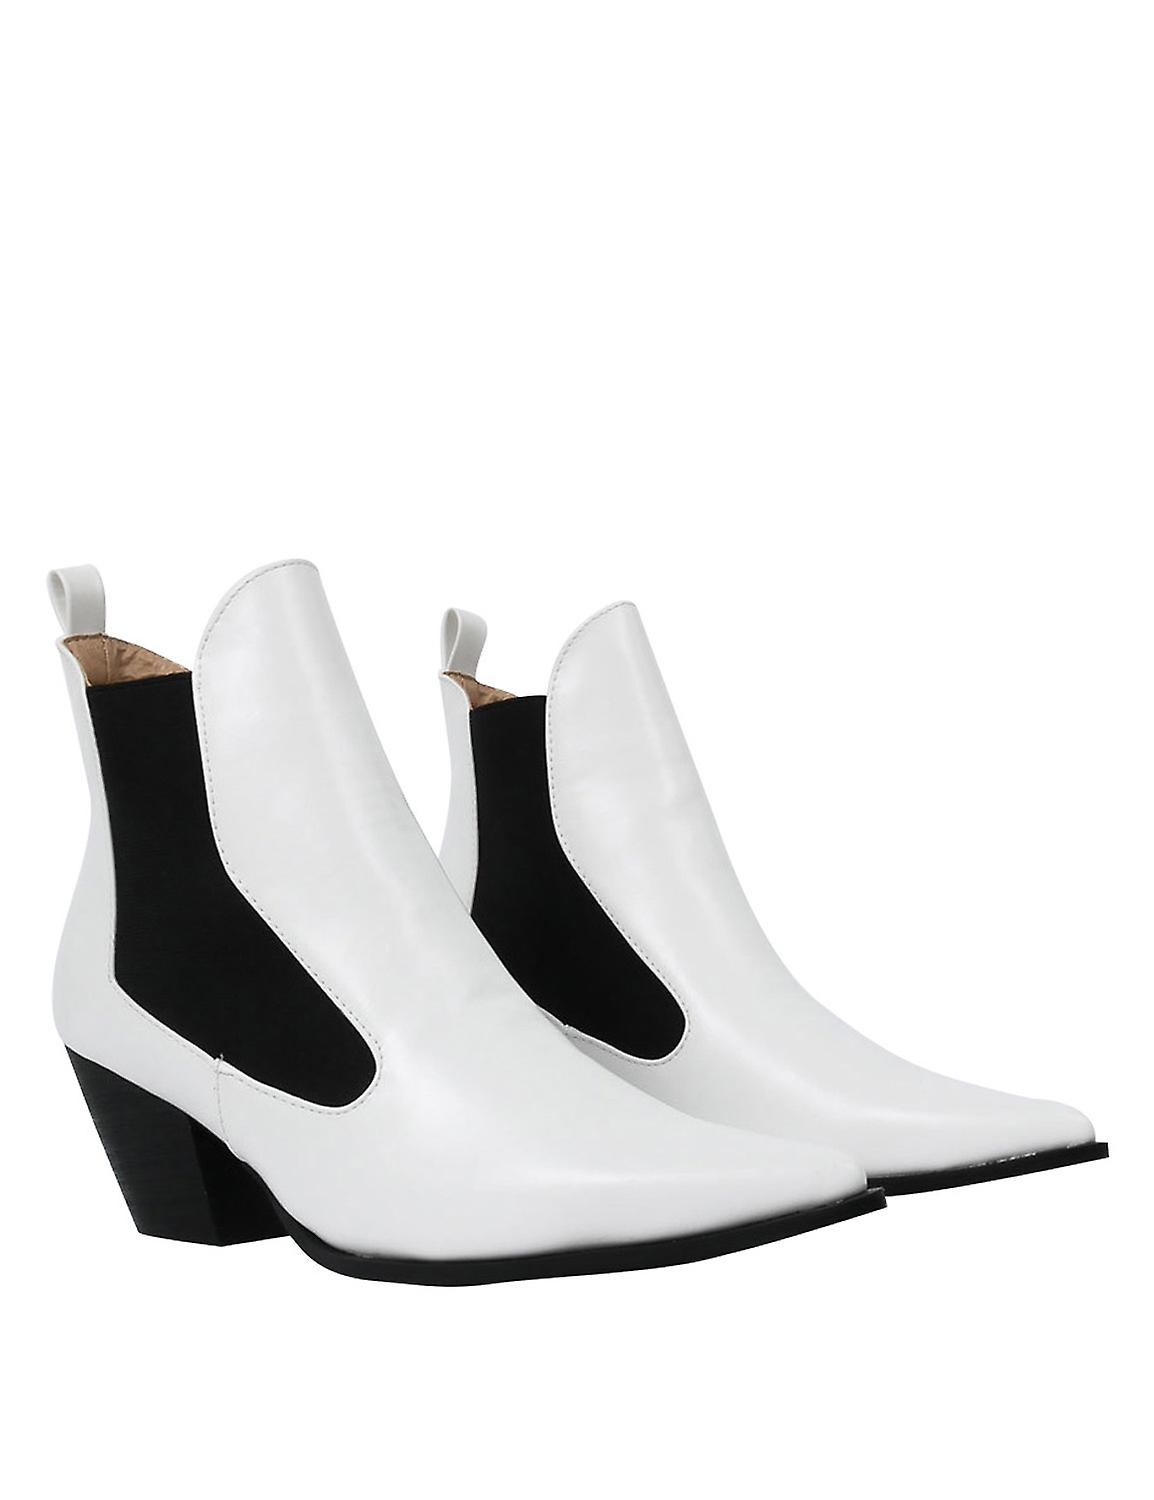 Raid Women's Flick Western Ankle Boots